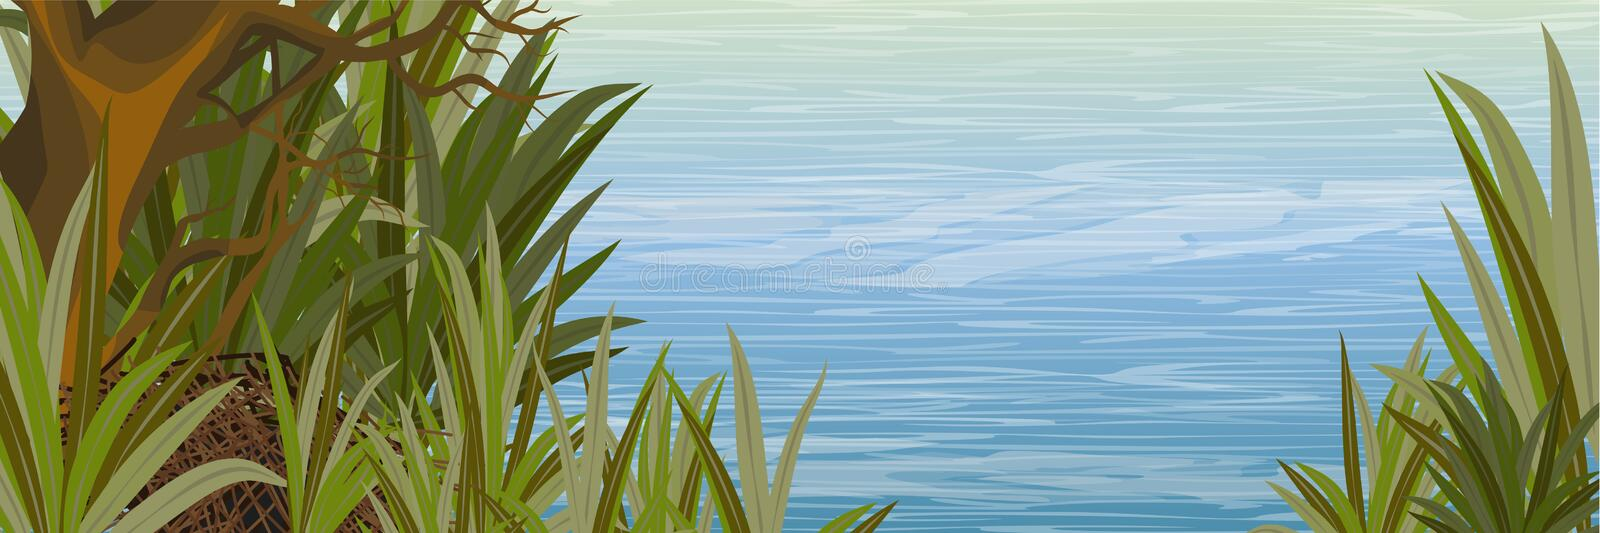 The shore of the pond with a branchy tree and tall grass stock illustration